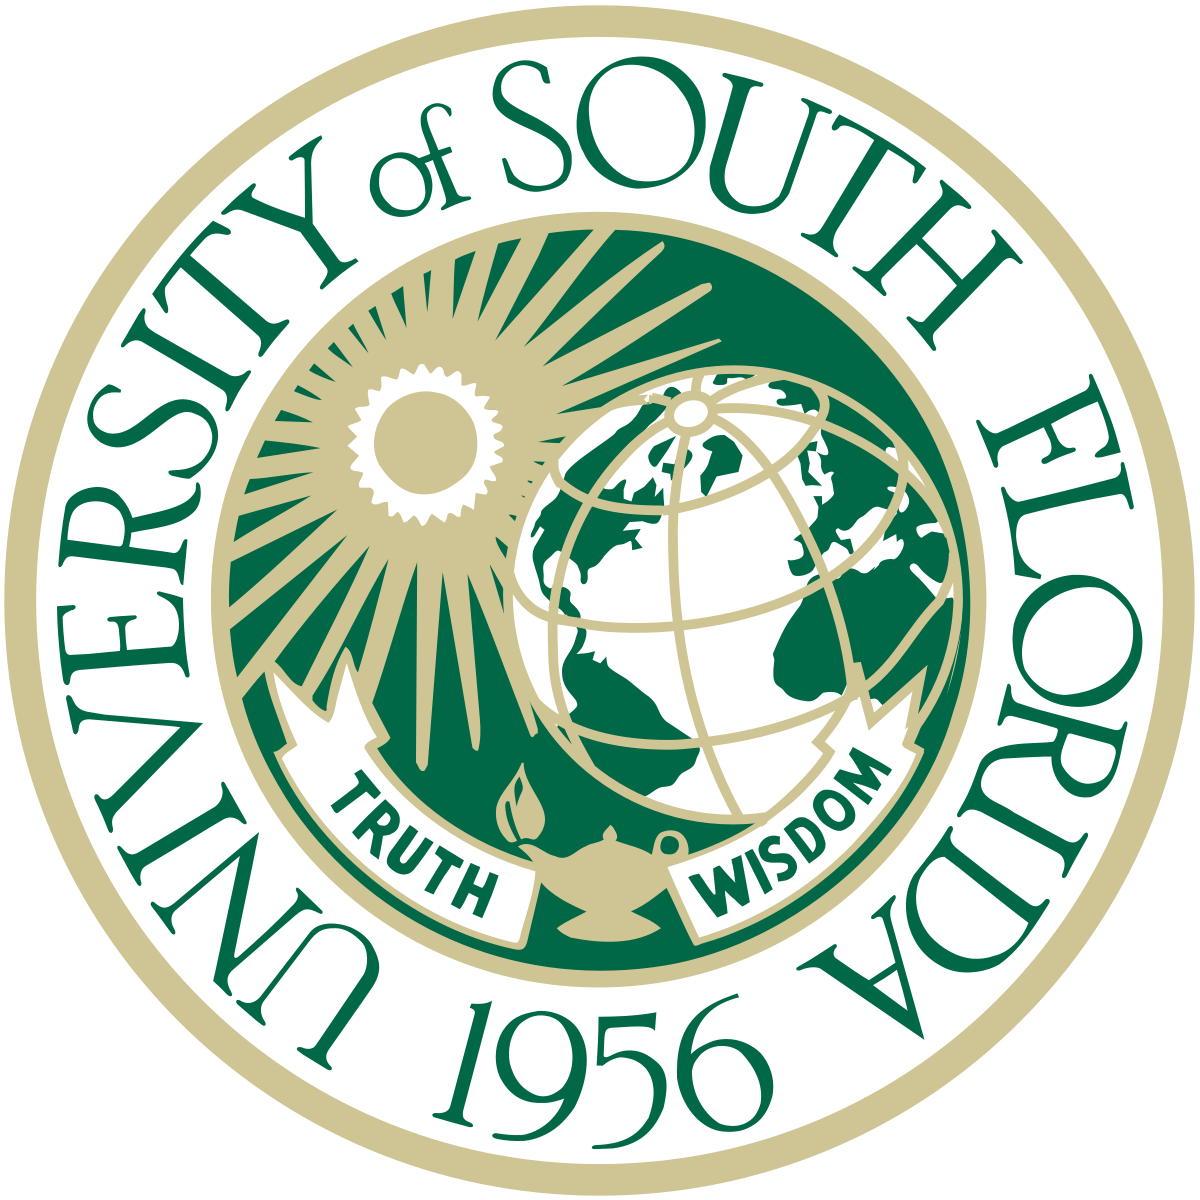 University of South Florida.